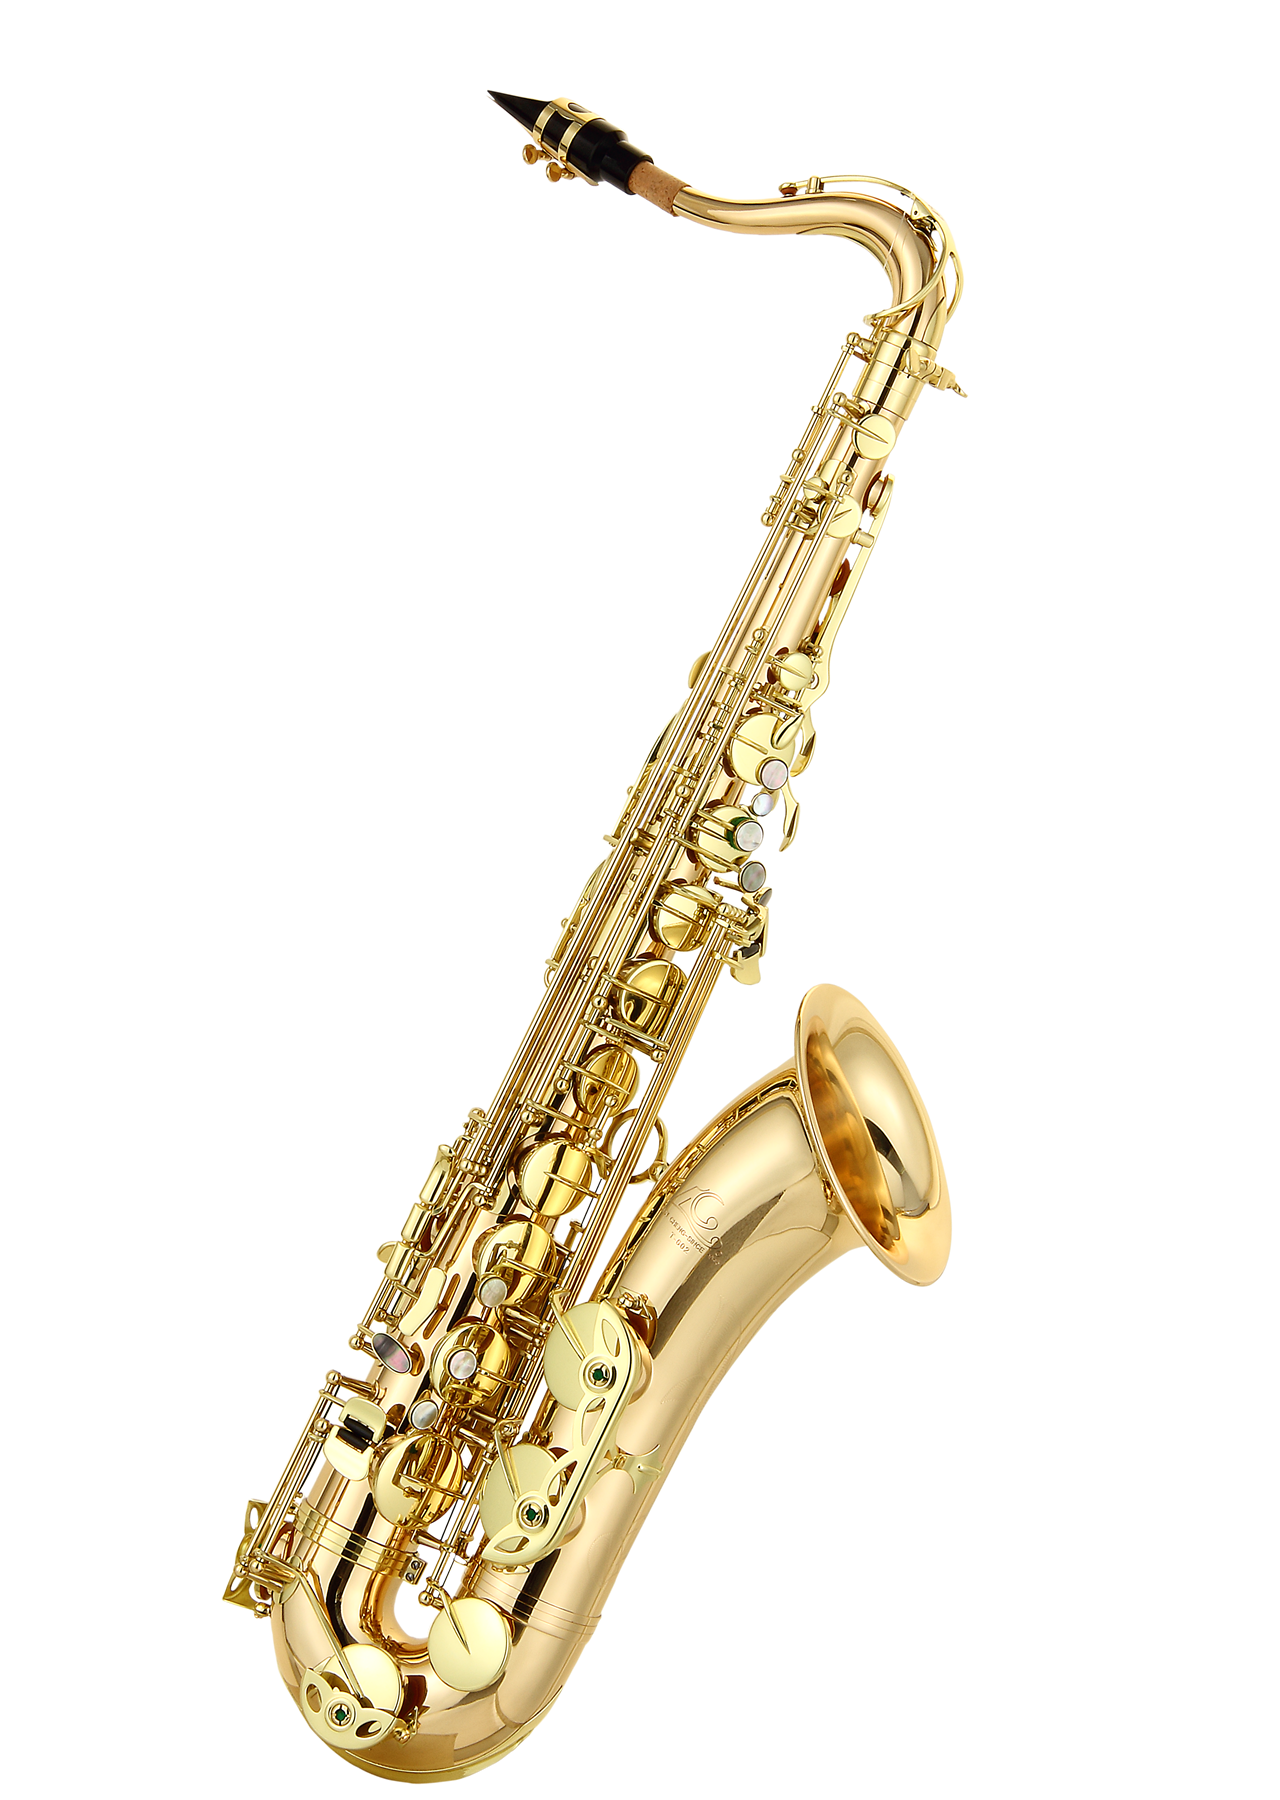 Saxophone png images all. Instruments clipart transparent background